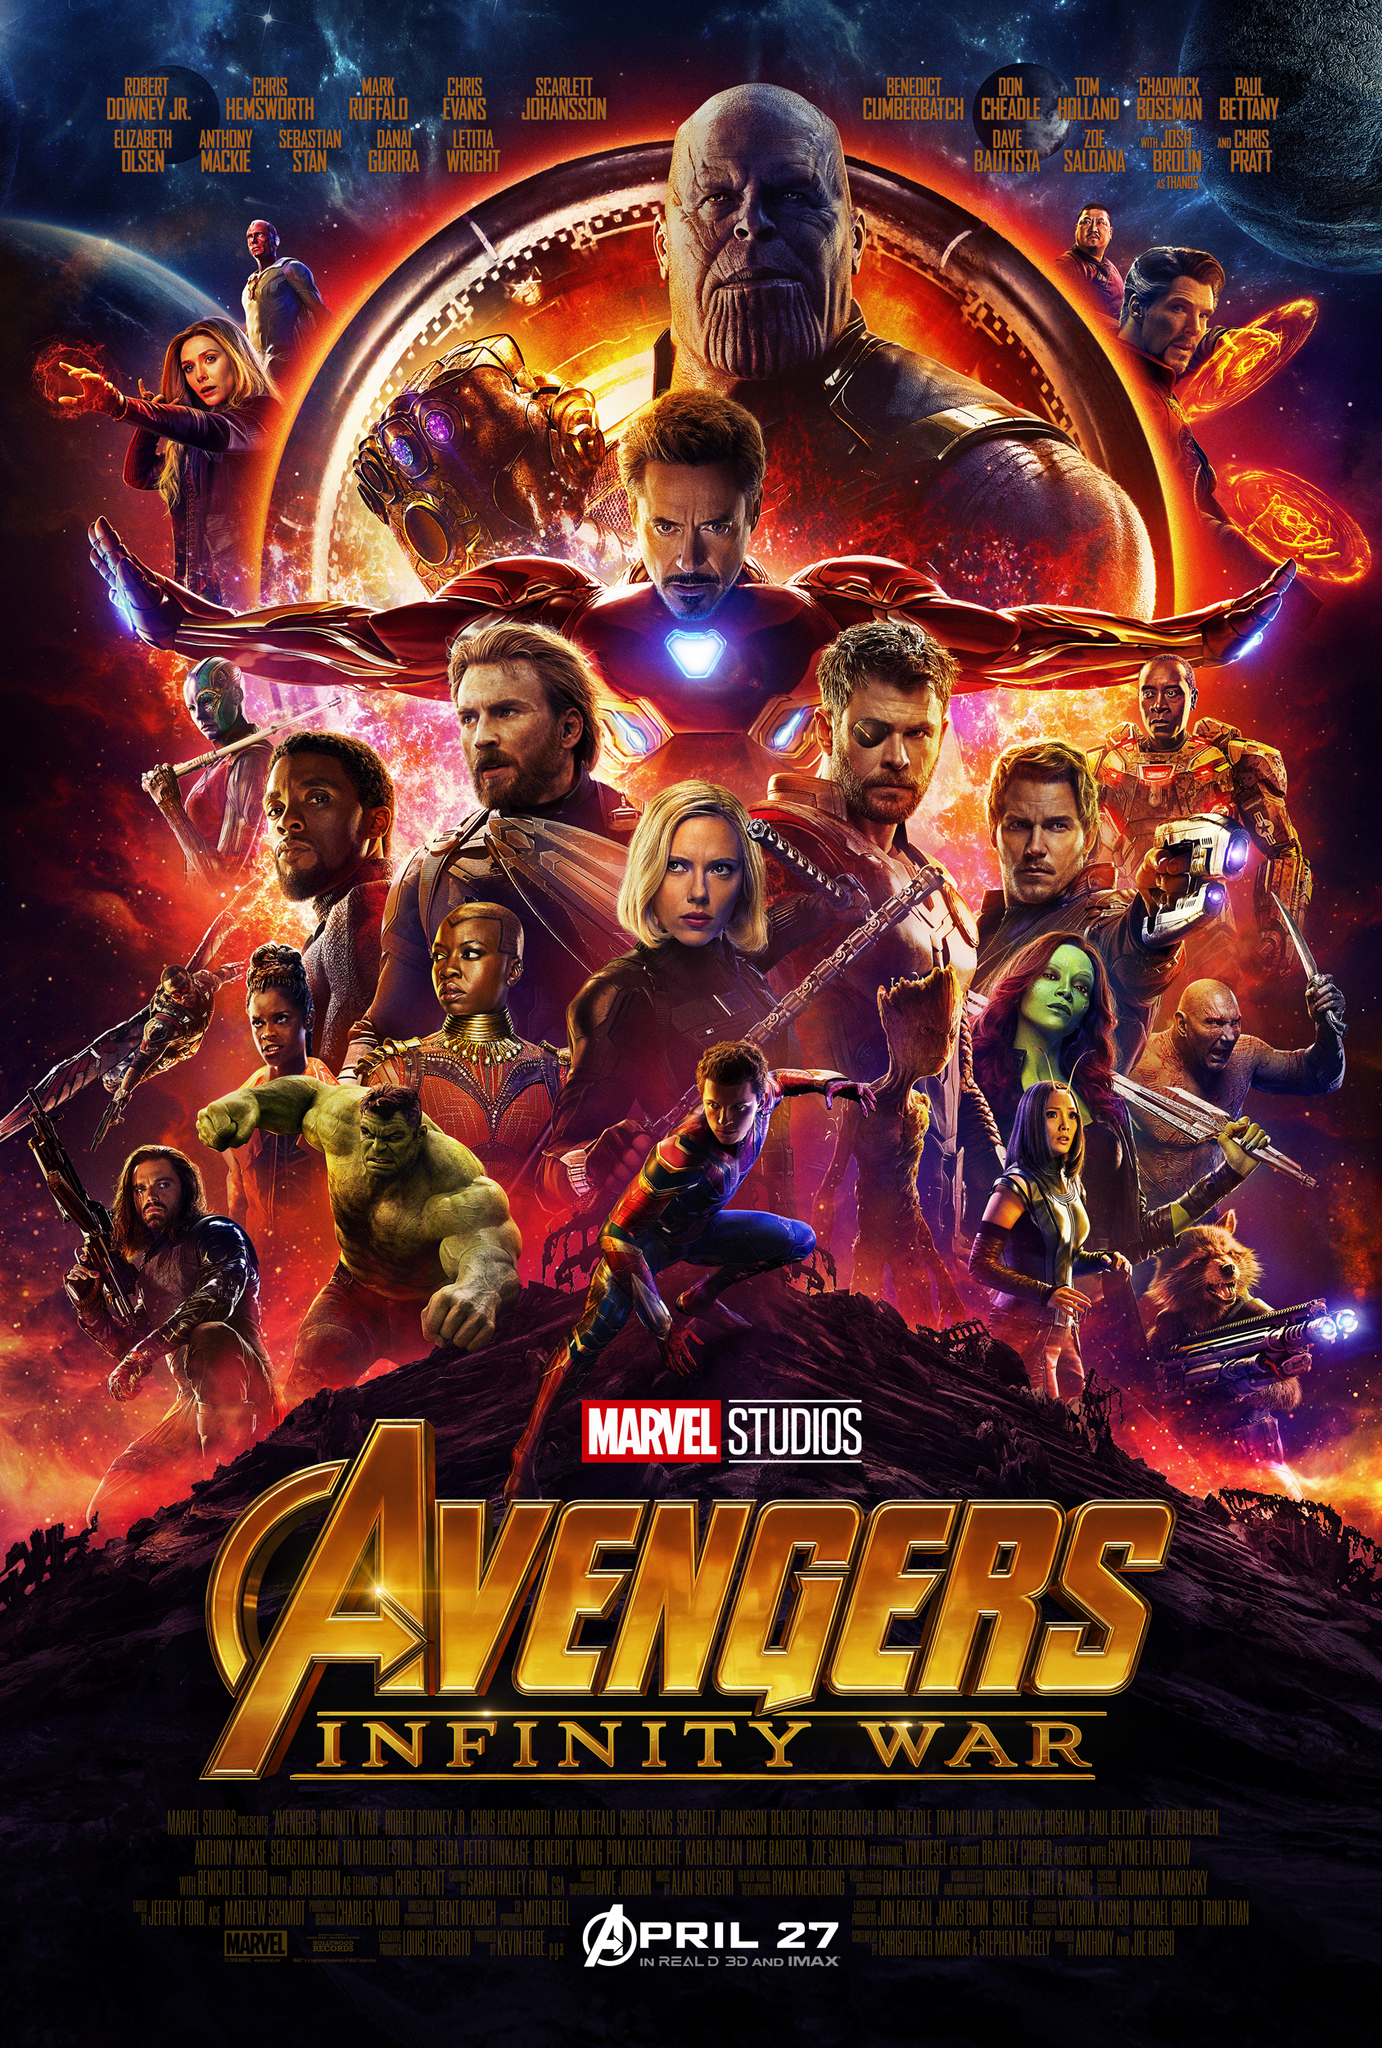 Image result for infinity war movie poster imdb""